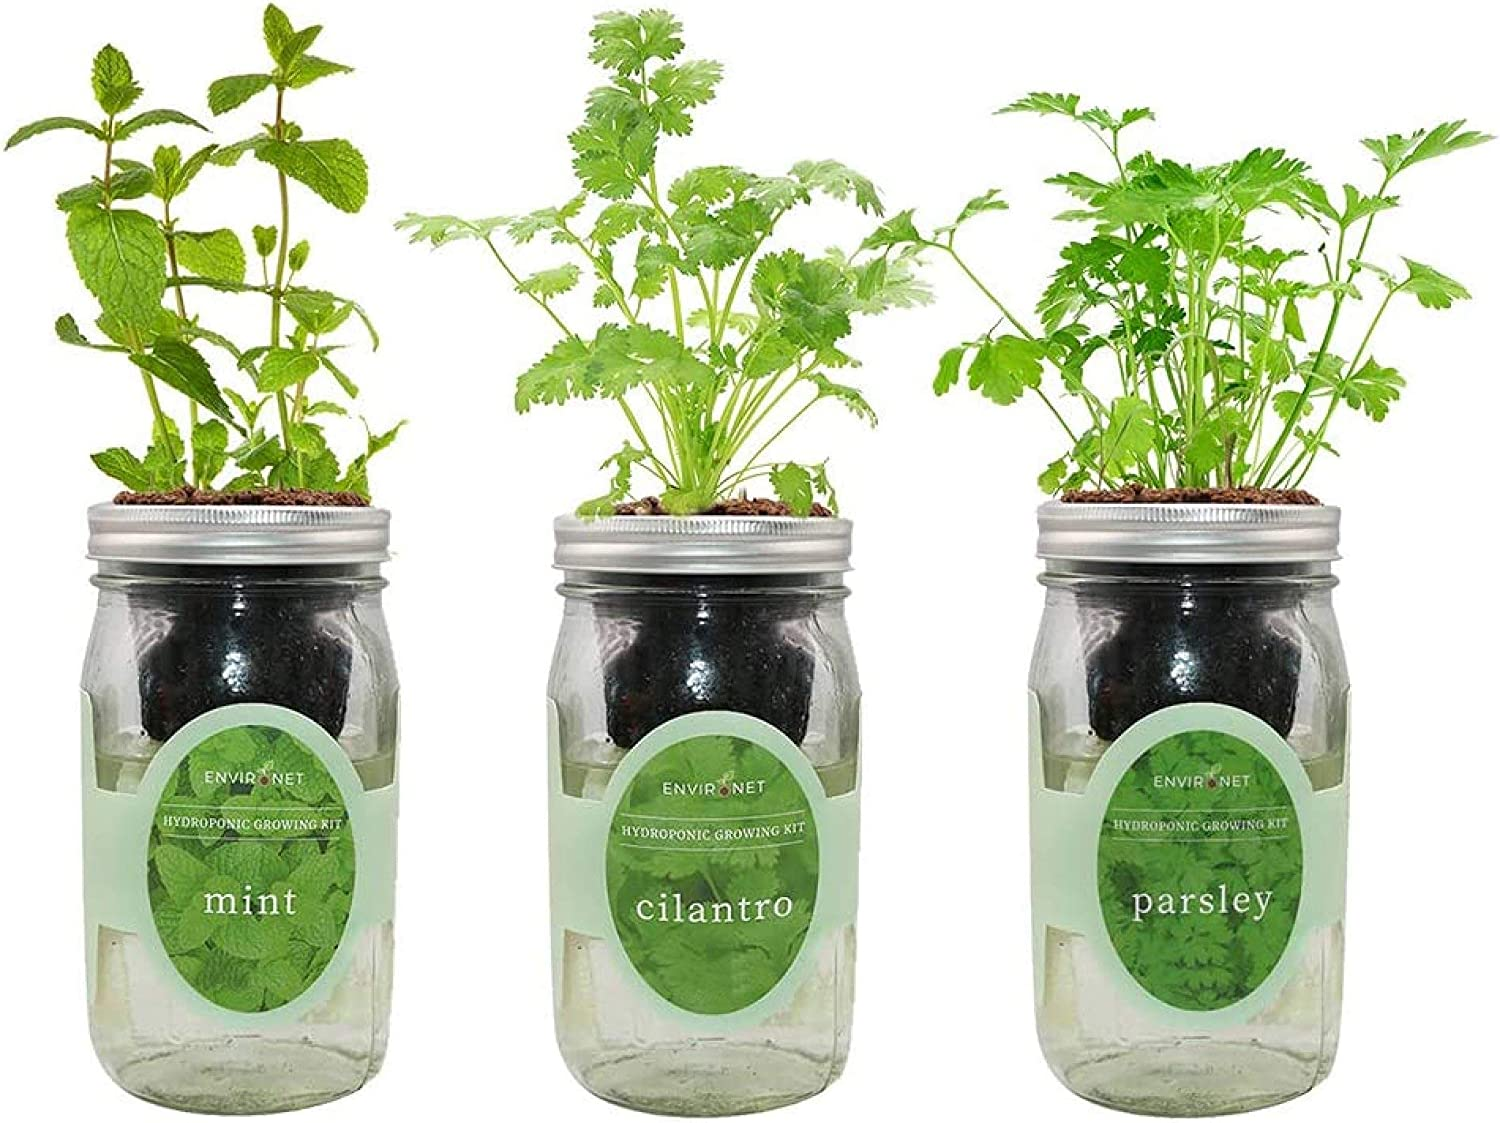 Environet Hydroponic Herb Growing Kit Set, Self-Watering Mason Jar Herb Garden Starter Kit Indoor, Grow Your Own Herbs from Seeds (Mint, Cilantro and Parsley)